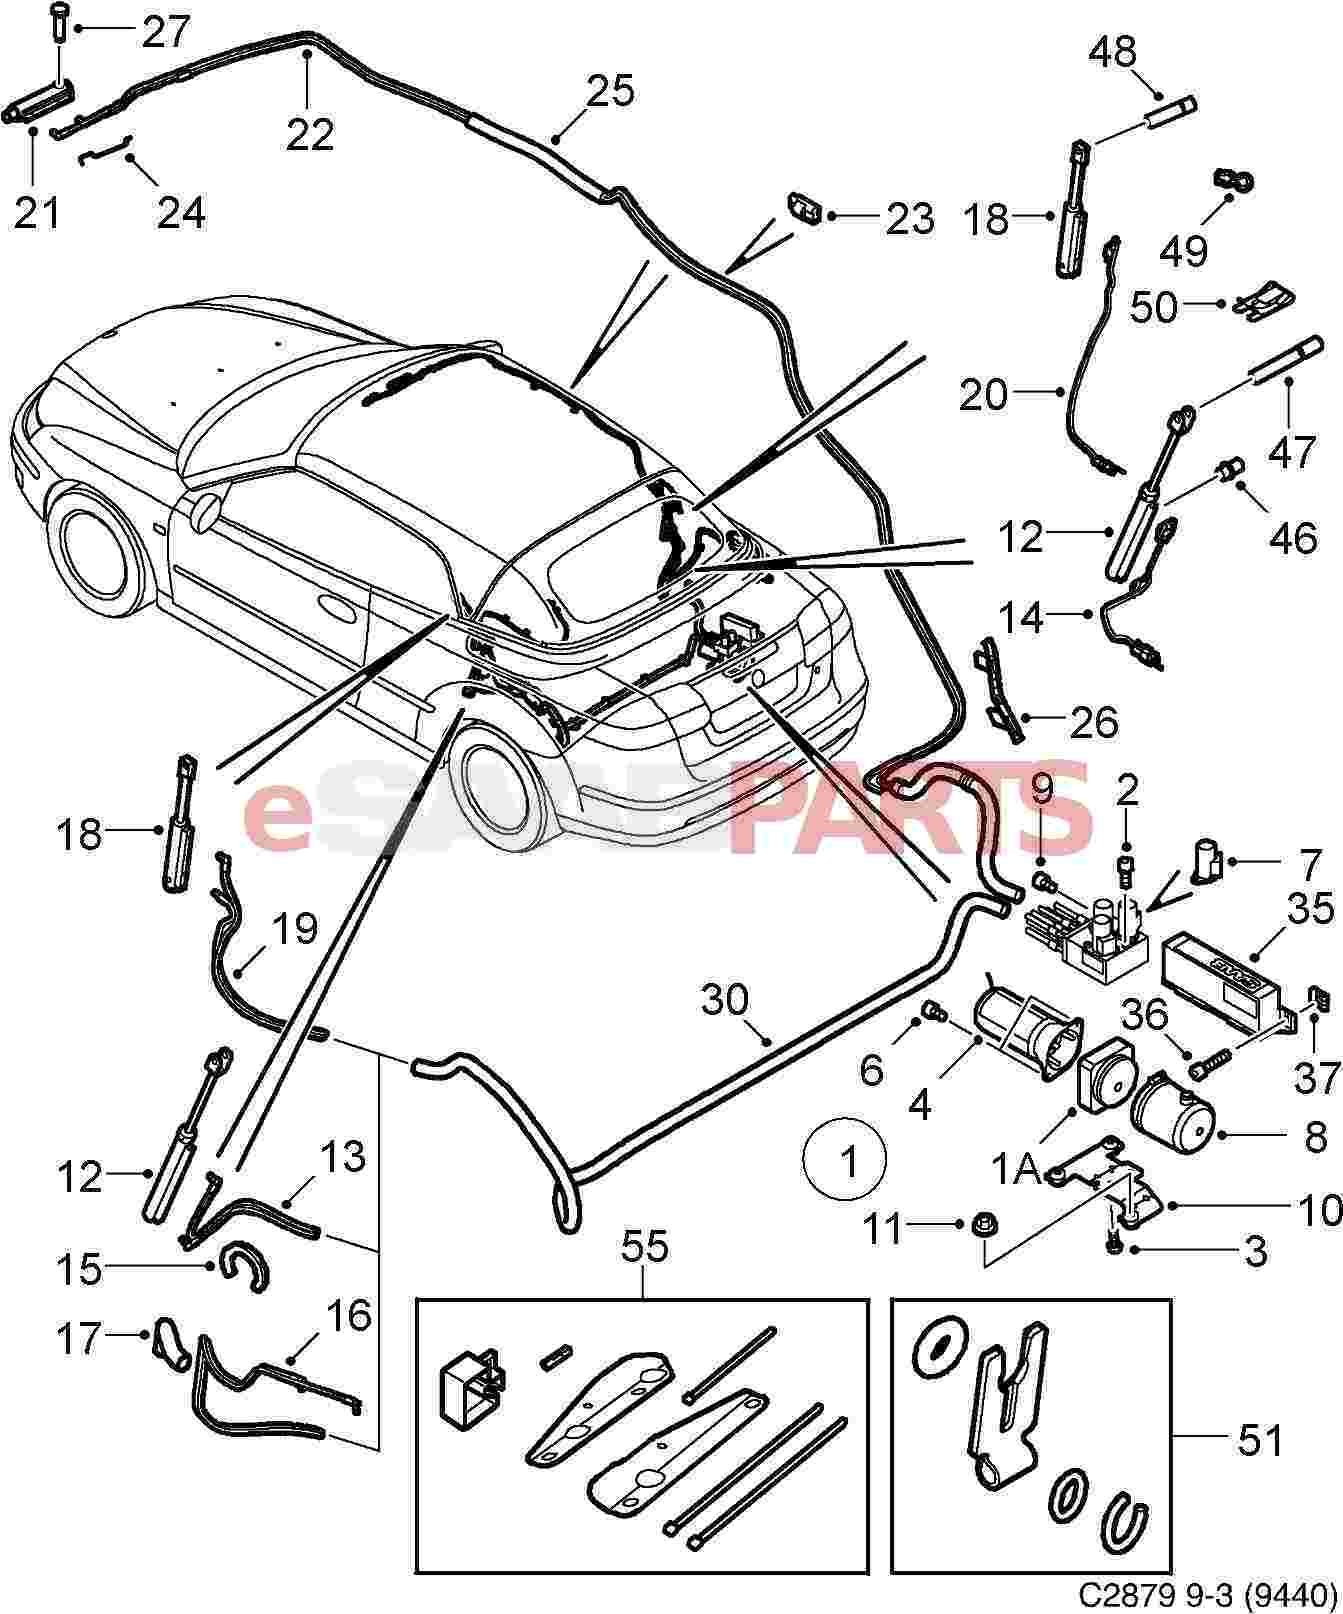 2003 saab 9 3 convertible parts diagram  saab  auto wiring